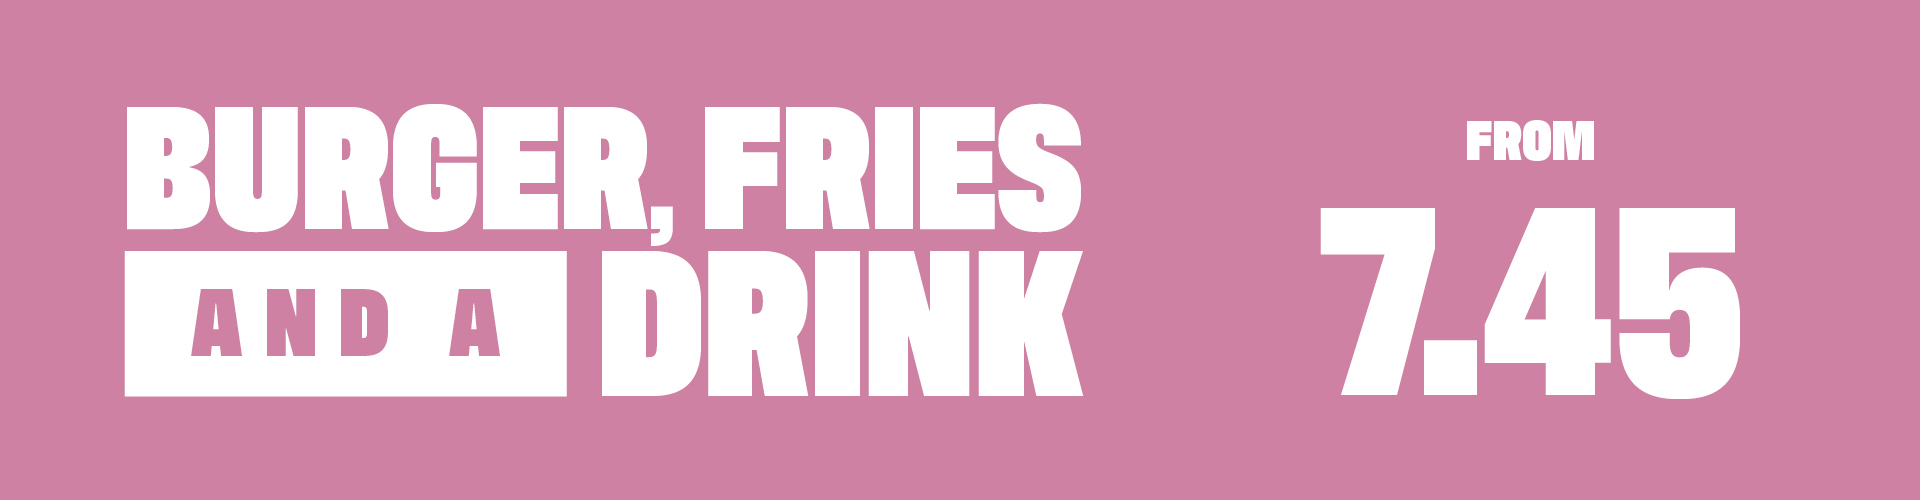 Burger Fries and a Drink